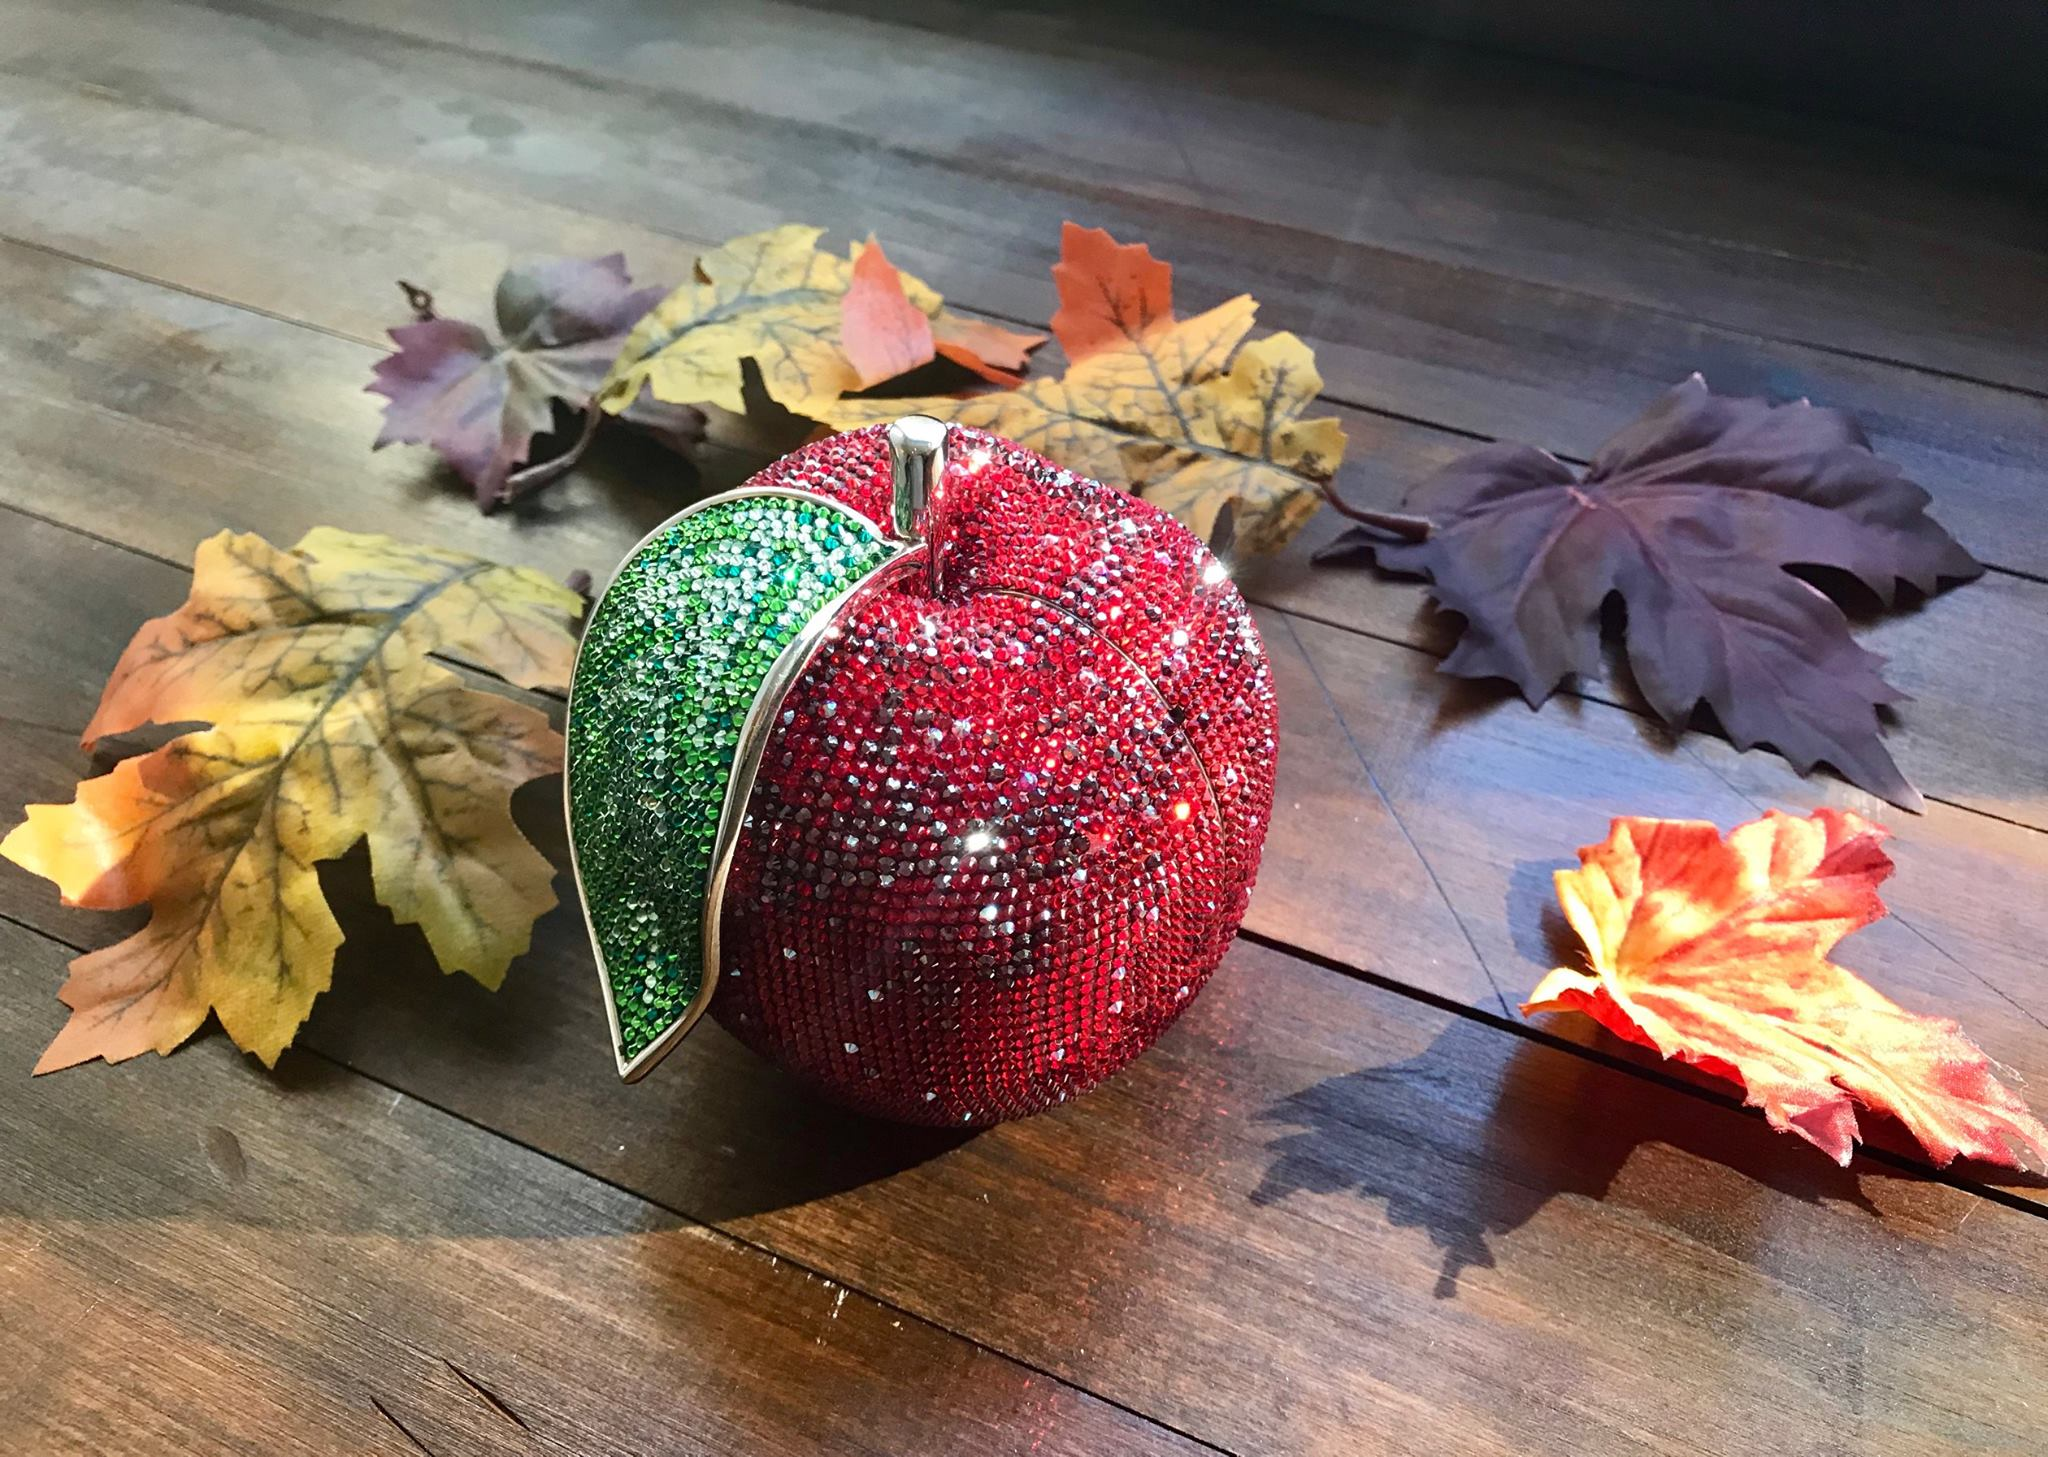 A red crystal bag from Judith Leiber, arranged near some leaves